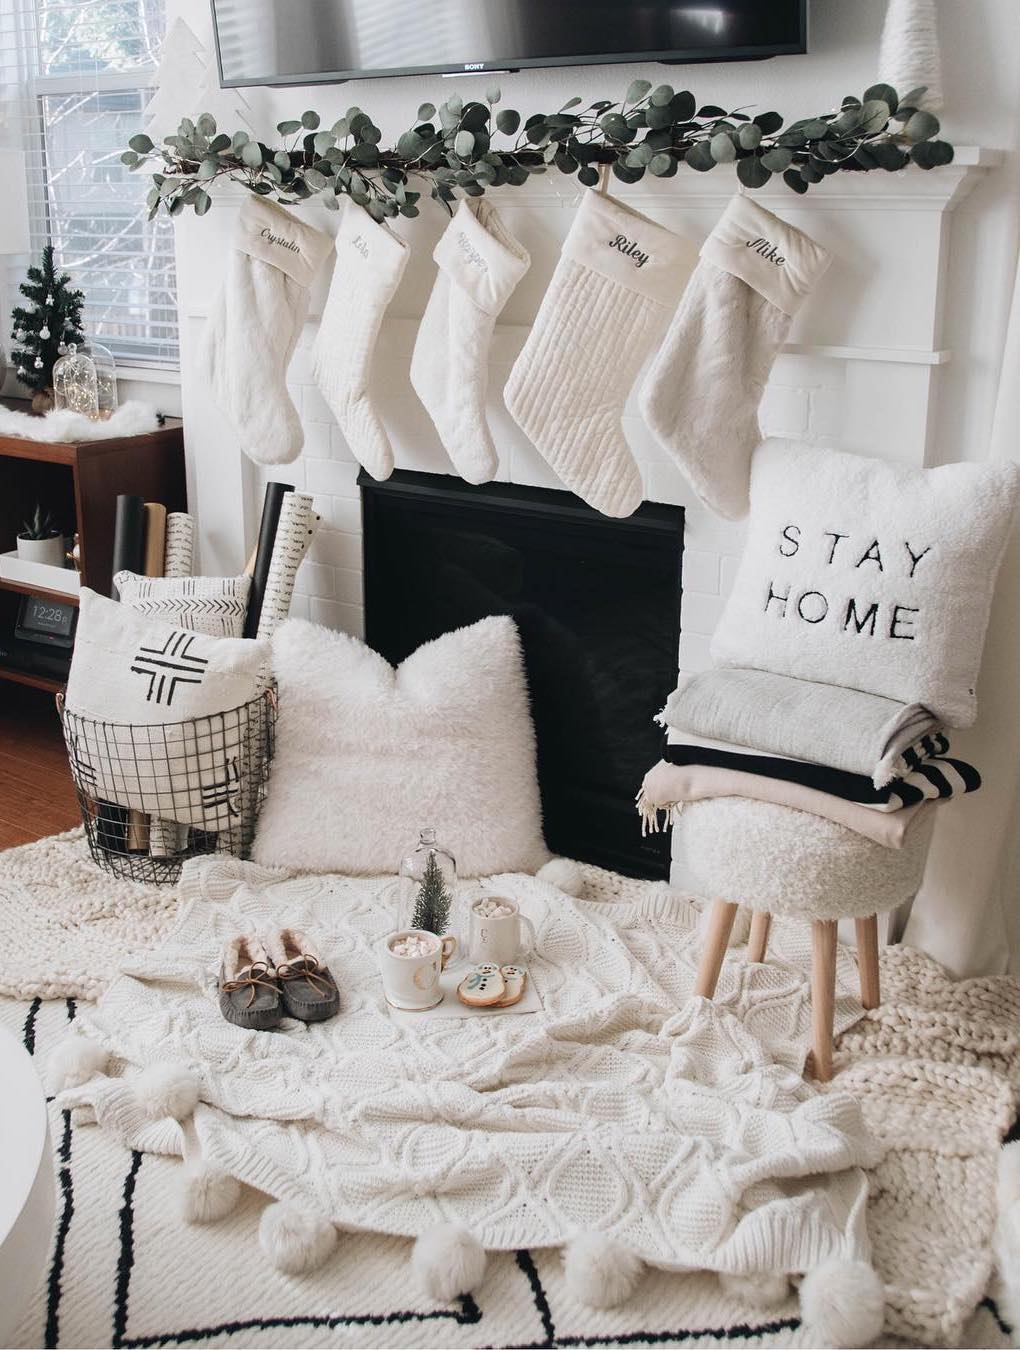 Cozy Winter Home with White Throw Blankets, Slippers, Stockings and a Fireplace via @crystalinmarie